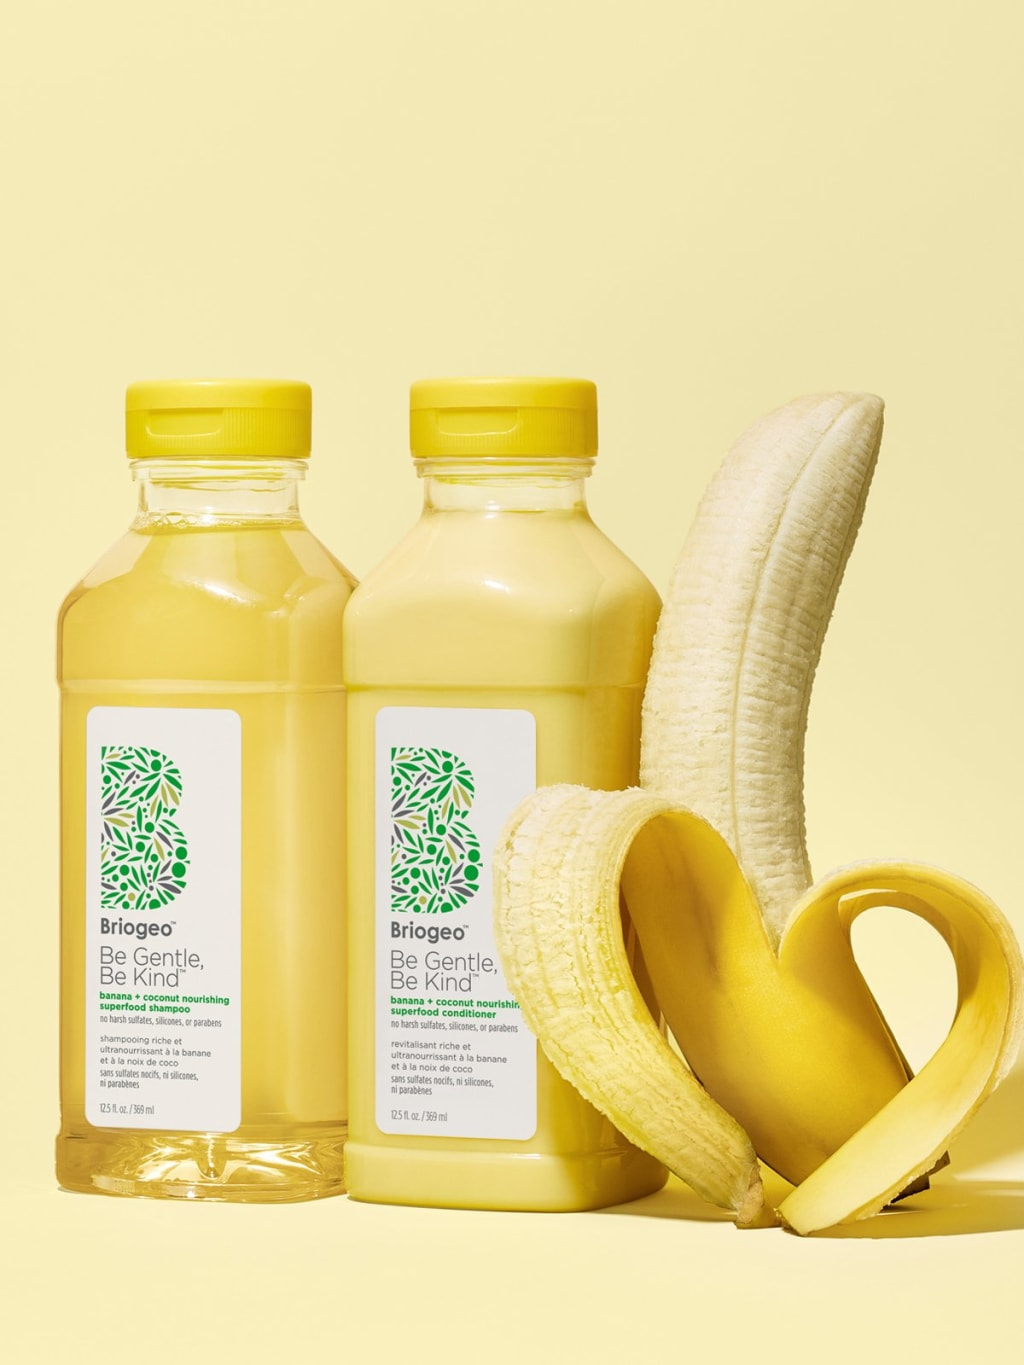 My Review of the Briogeo Banana and Coconut Superfood Shampoo and Conditioner